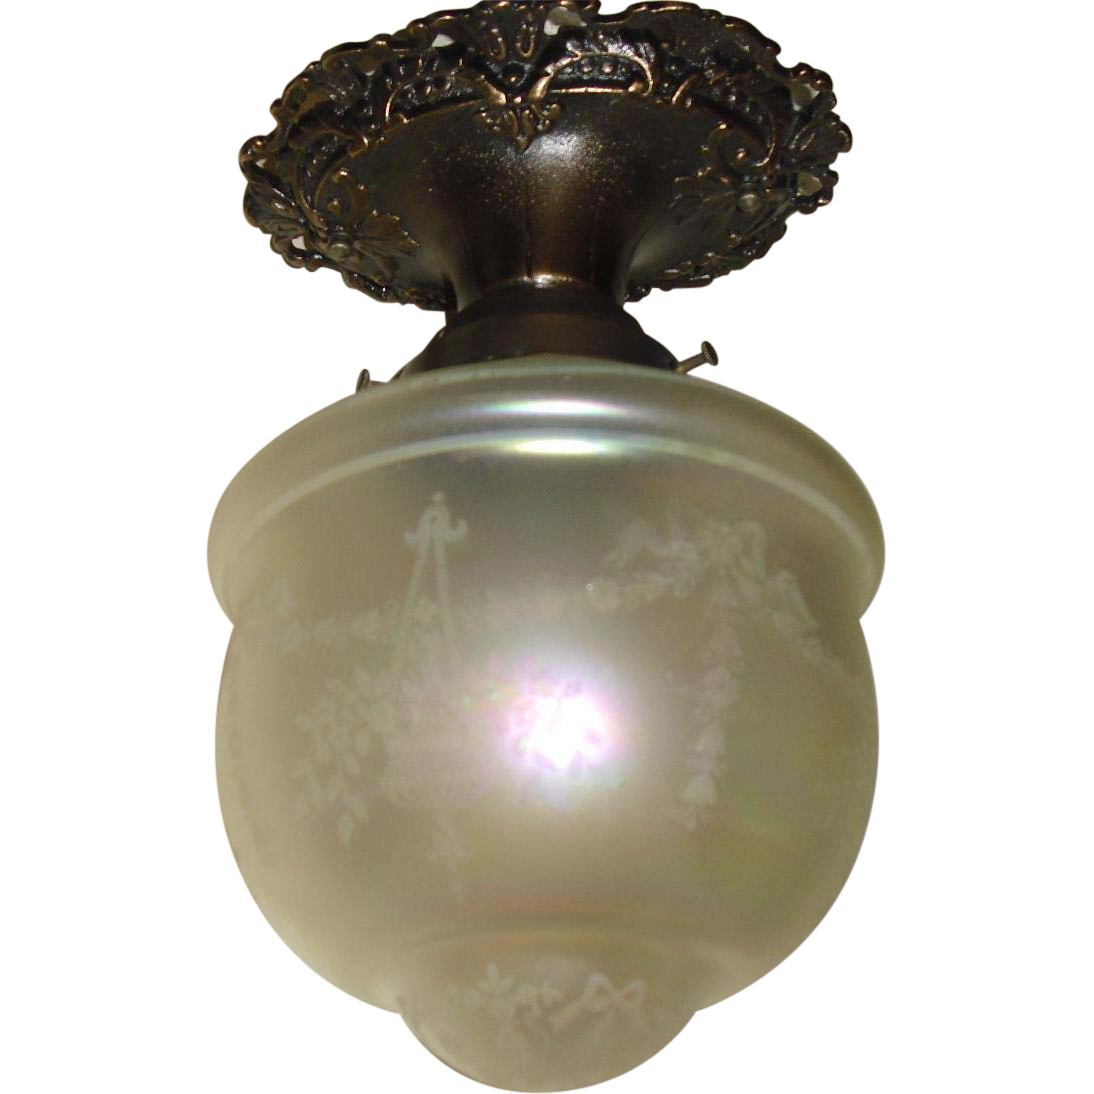 Victorian Ceiling Light - Fancy Bronze Fixture with Iridescent Acid Etched Shade - 2 available